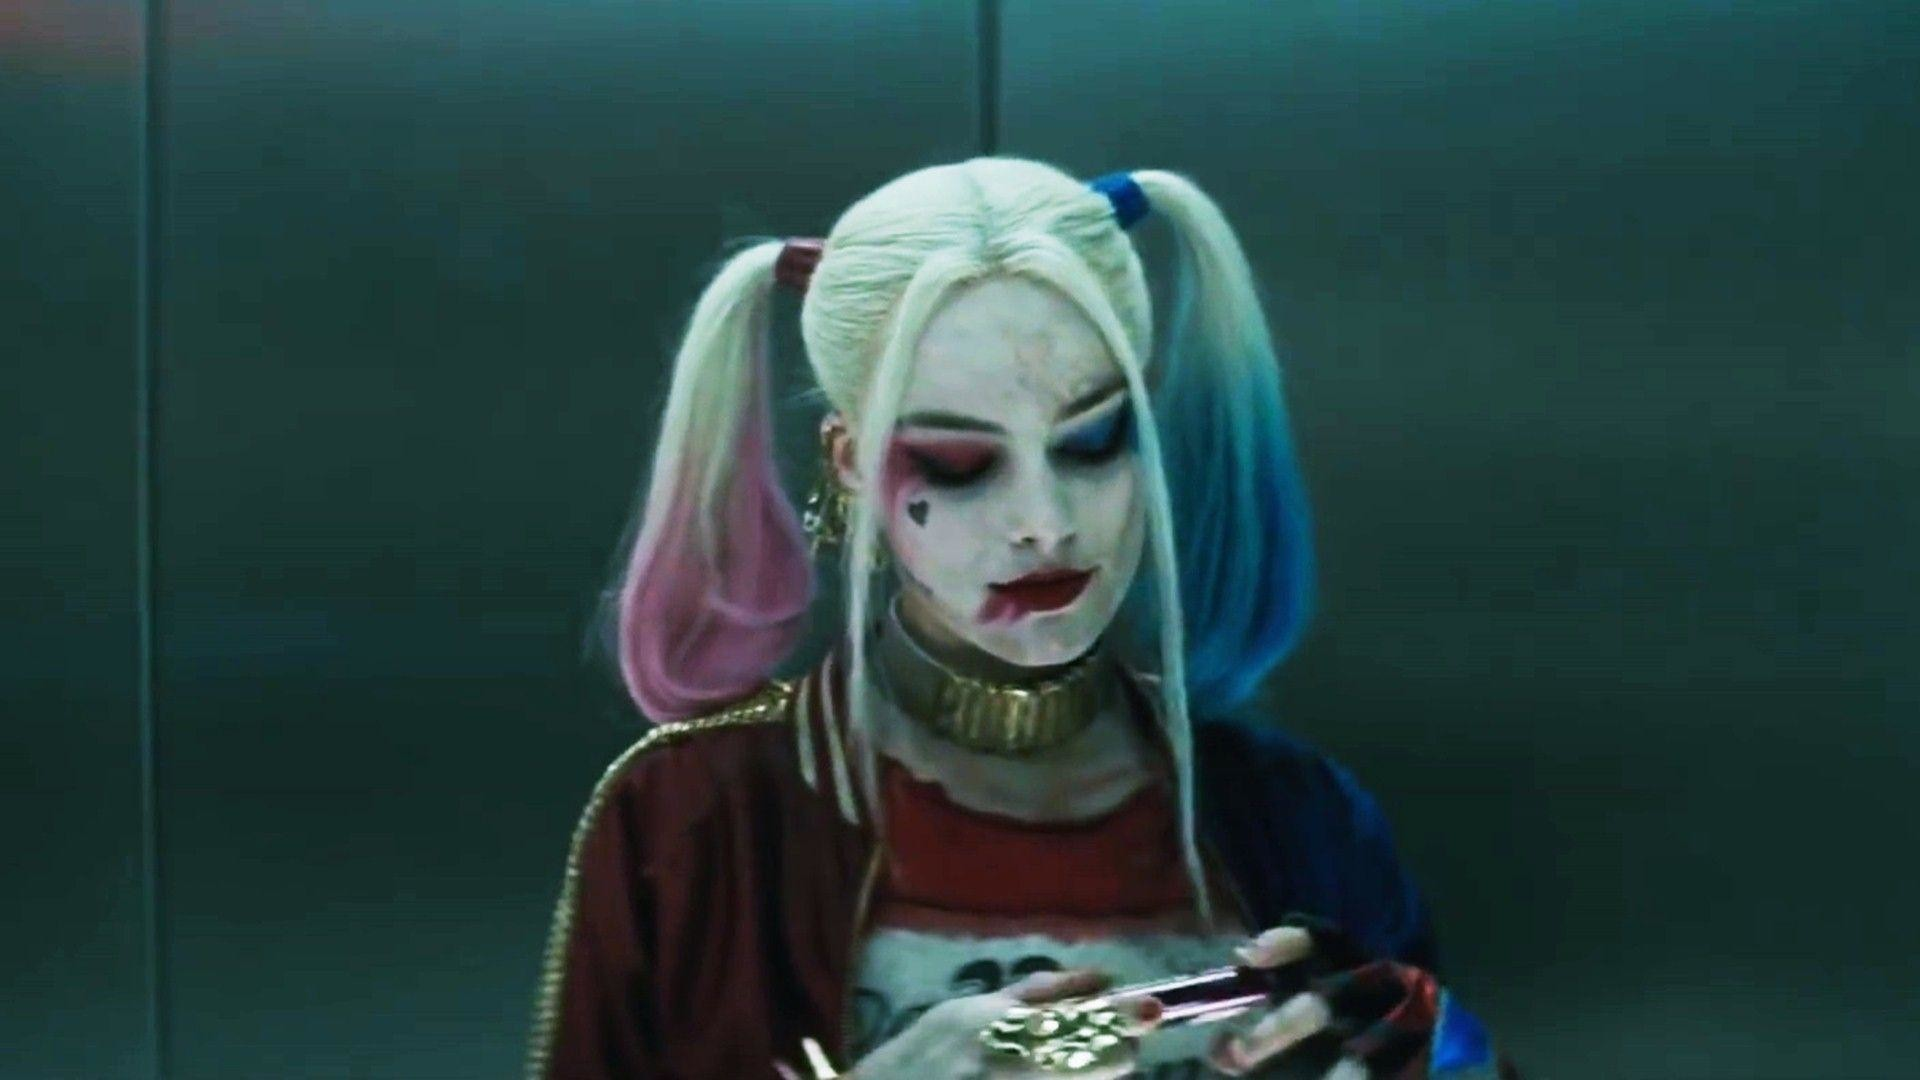 Suicide Squad Wallpapers HD Backgrounds, Images, Pics, Photos Free .